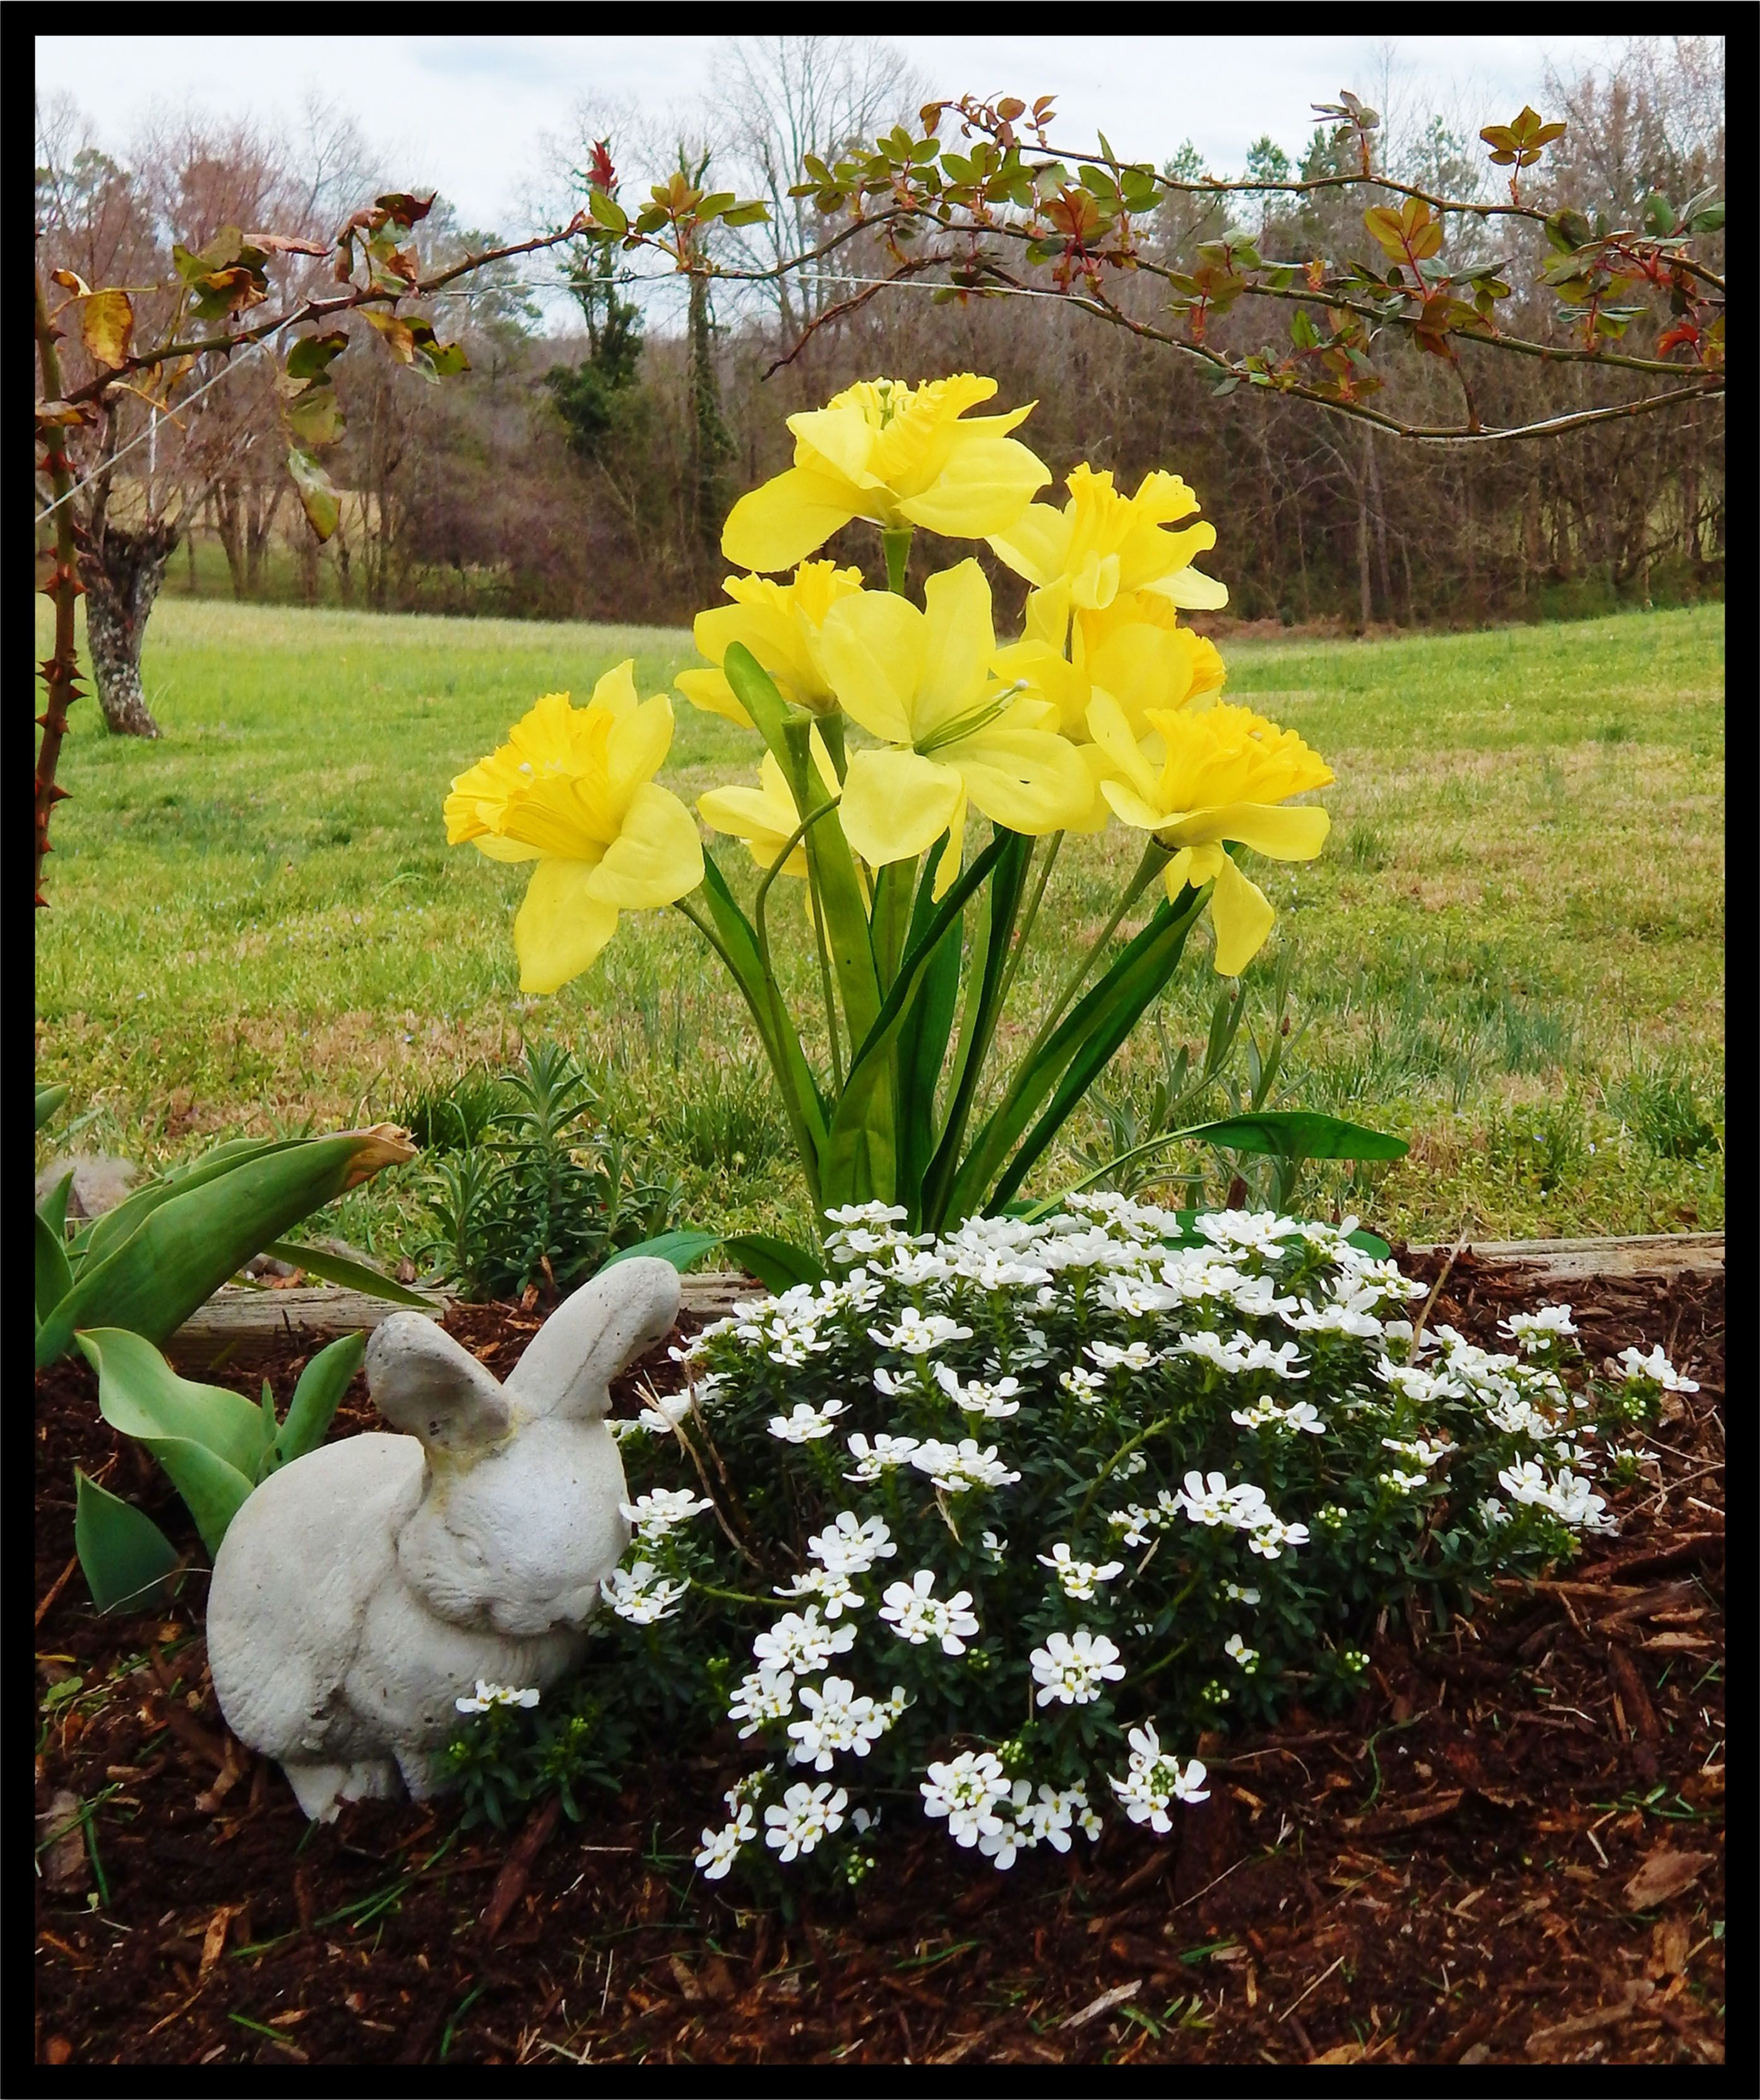 Placed artificial daffodils( purchased from Walmart) behind spring flowers.